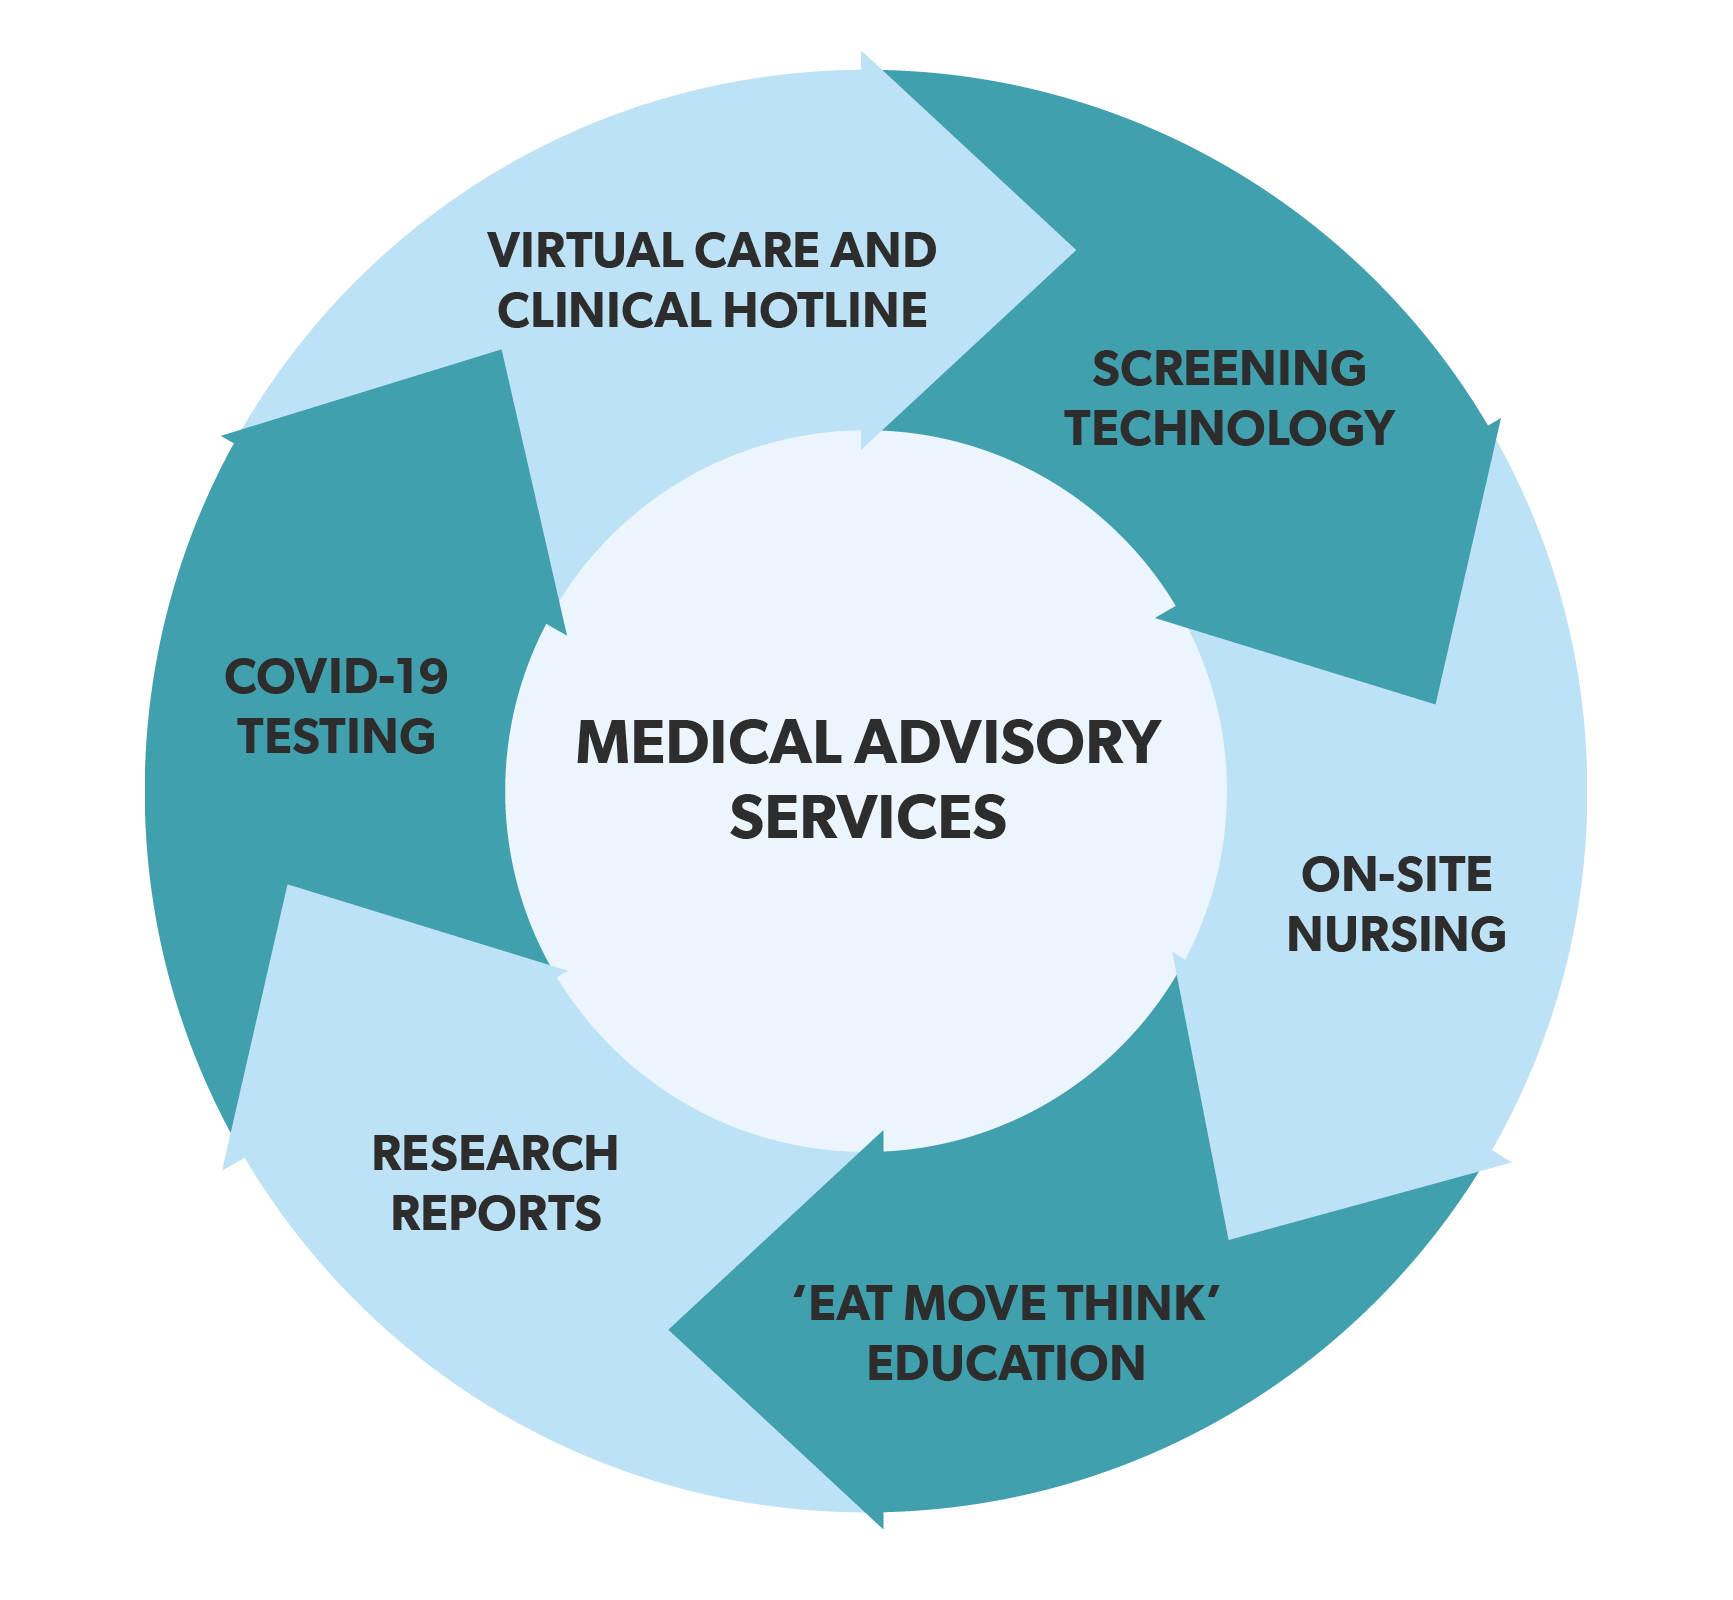 Medical Advisory Services Infographic